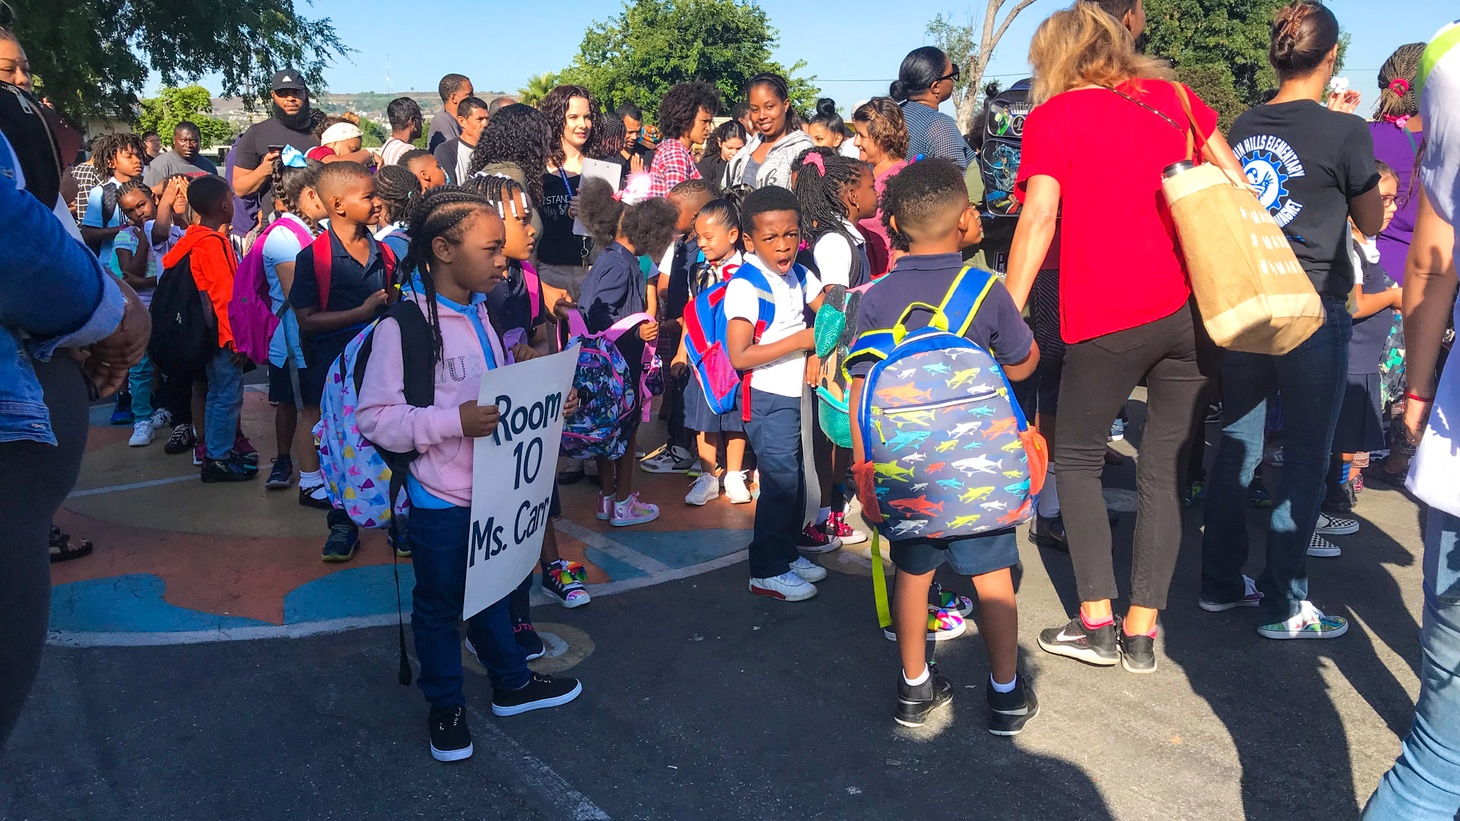 Students line up for their classrooms at Baldwin Hills Elementary.